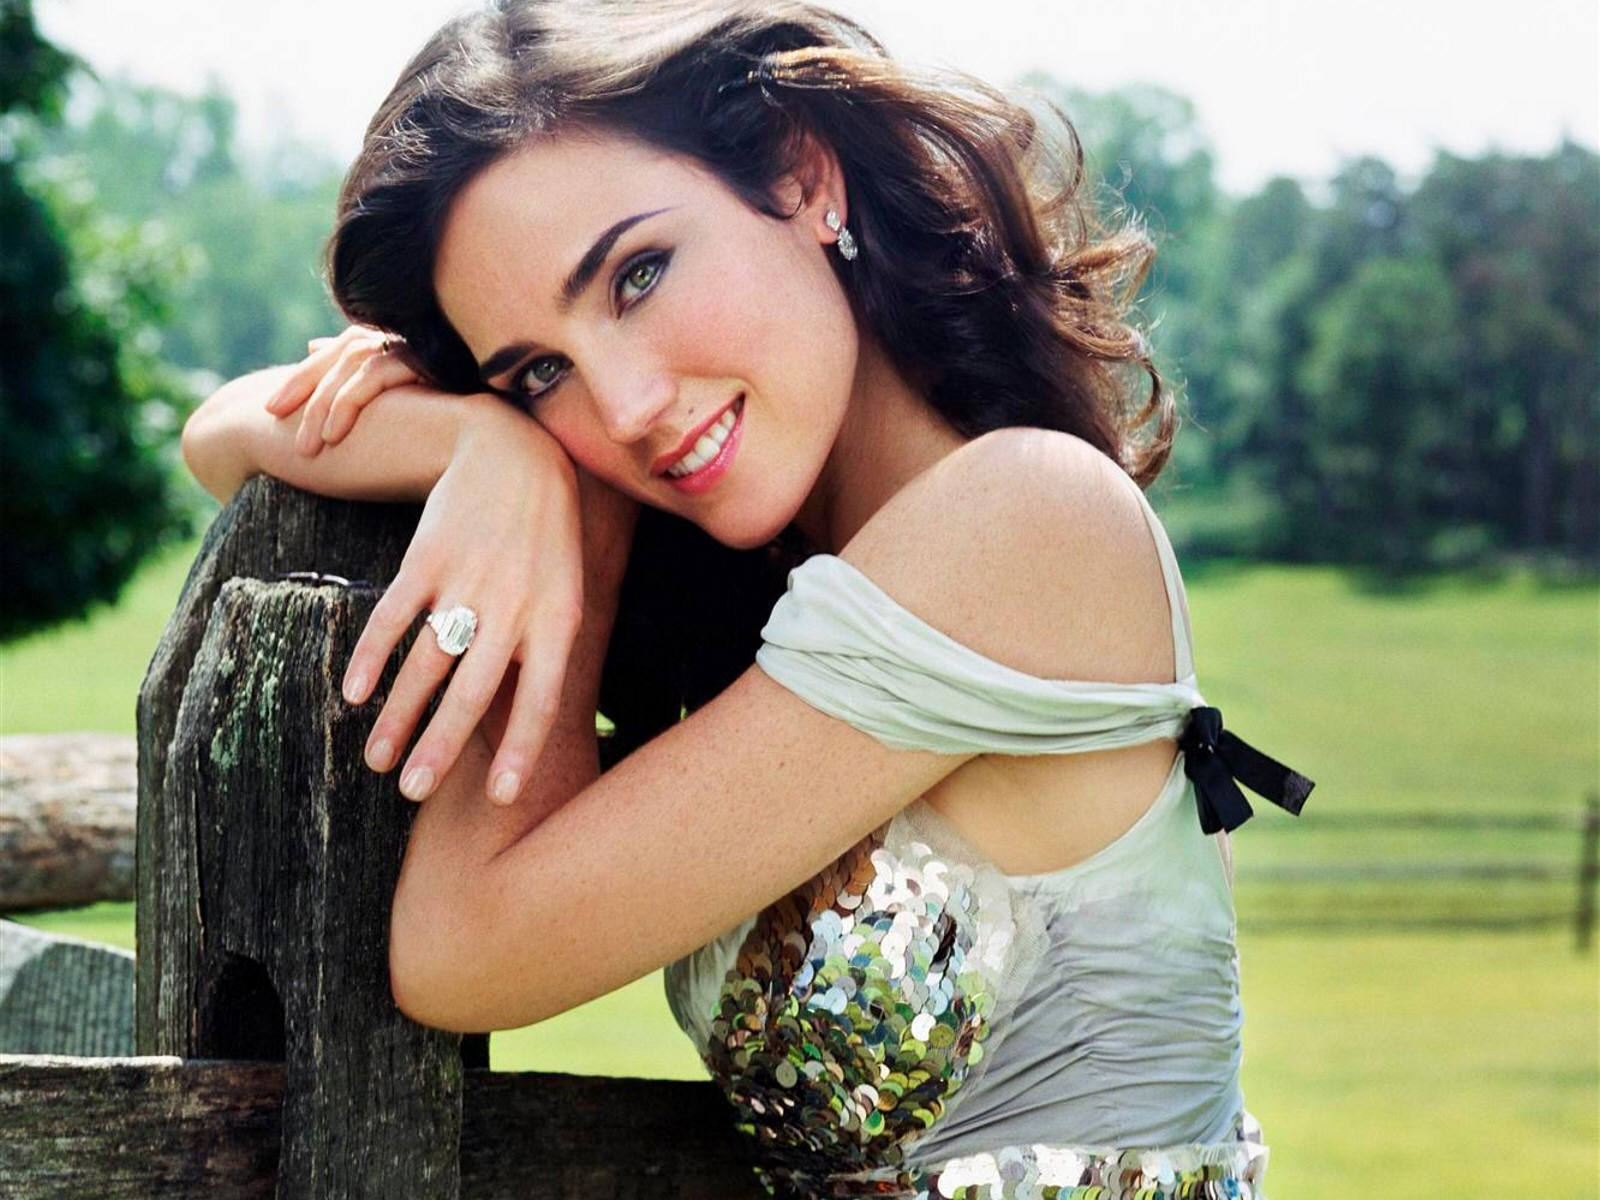 http://1.bp.blogspot.com/_cZuaghvCasw/TEqTCgdOu3I/AAAAAAAAIjU/y_uZ8Qb5nWs/s1600/Jennifer-Connelly-Wallpapers.jpg